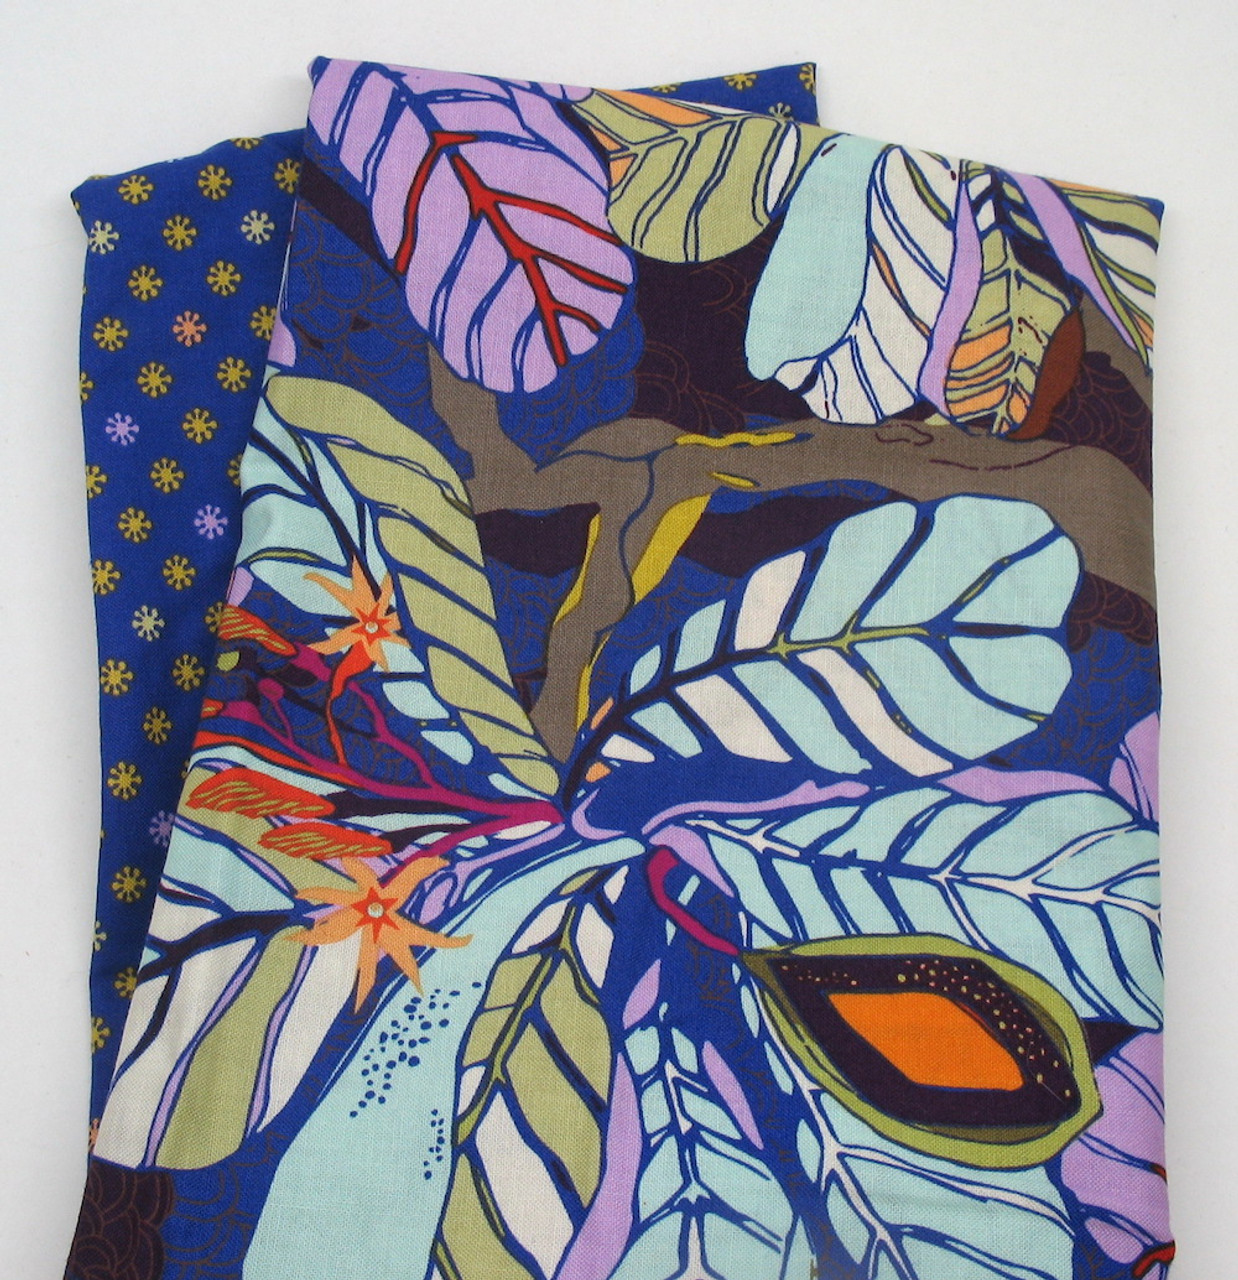 Kathy Doughty Assortment RP3238 Cotton Fabric Remnant Pack